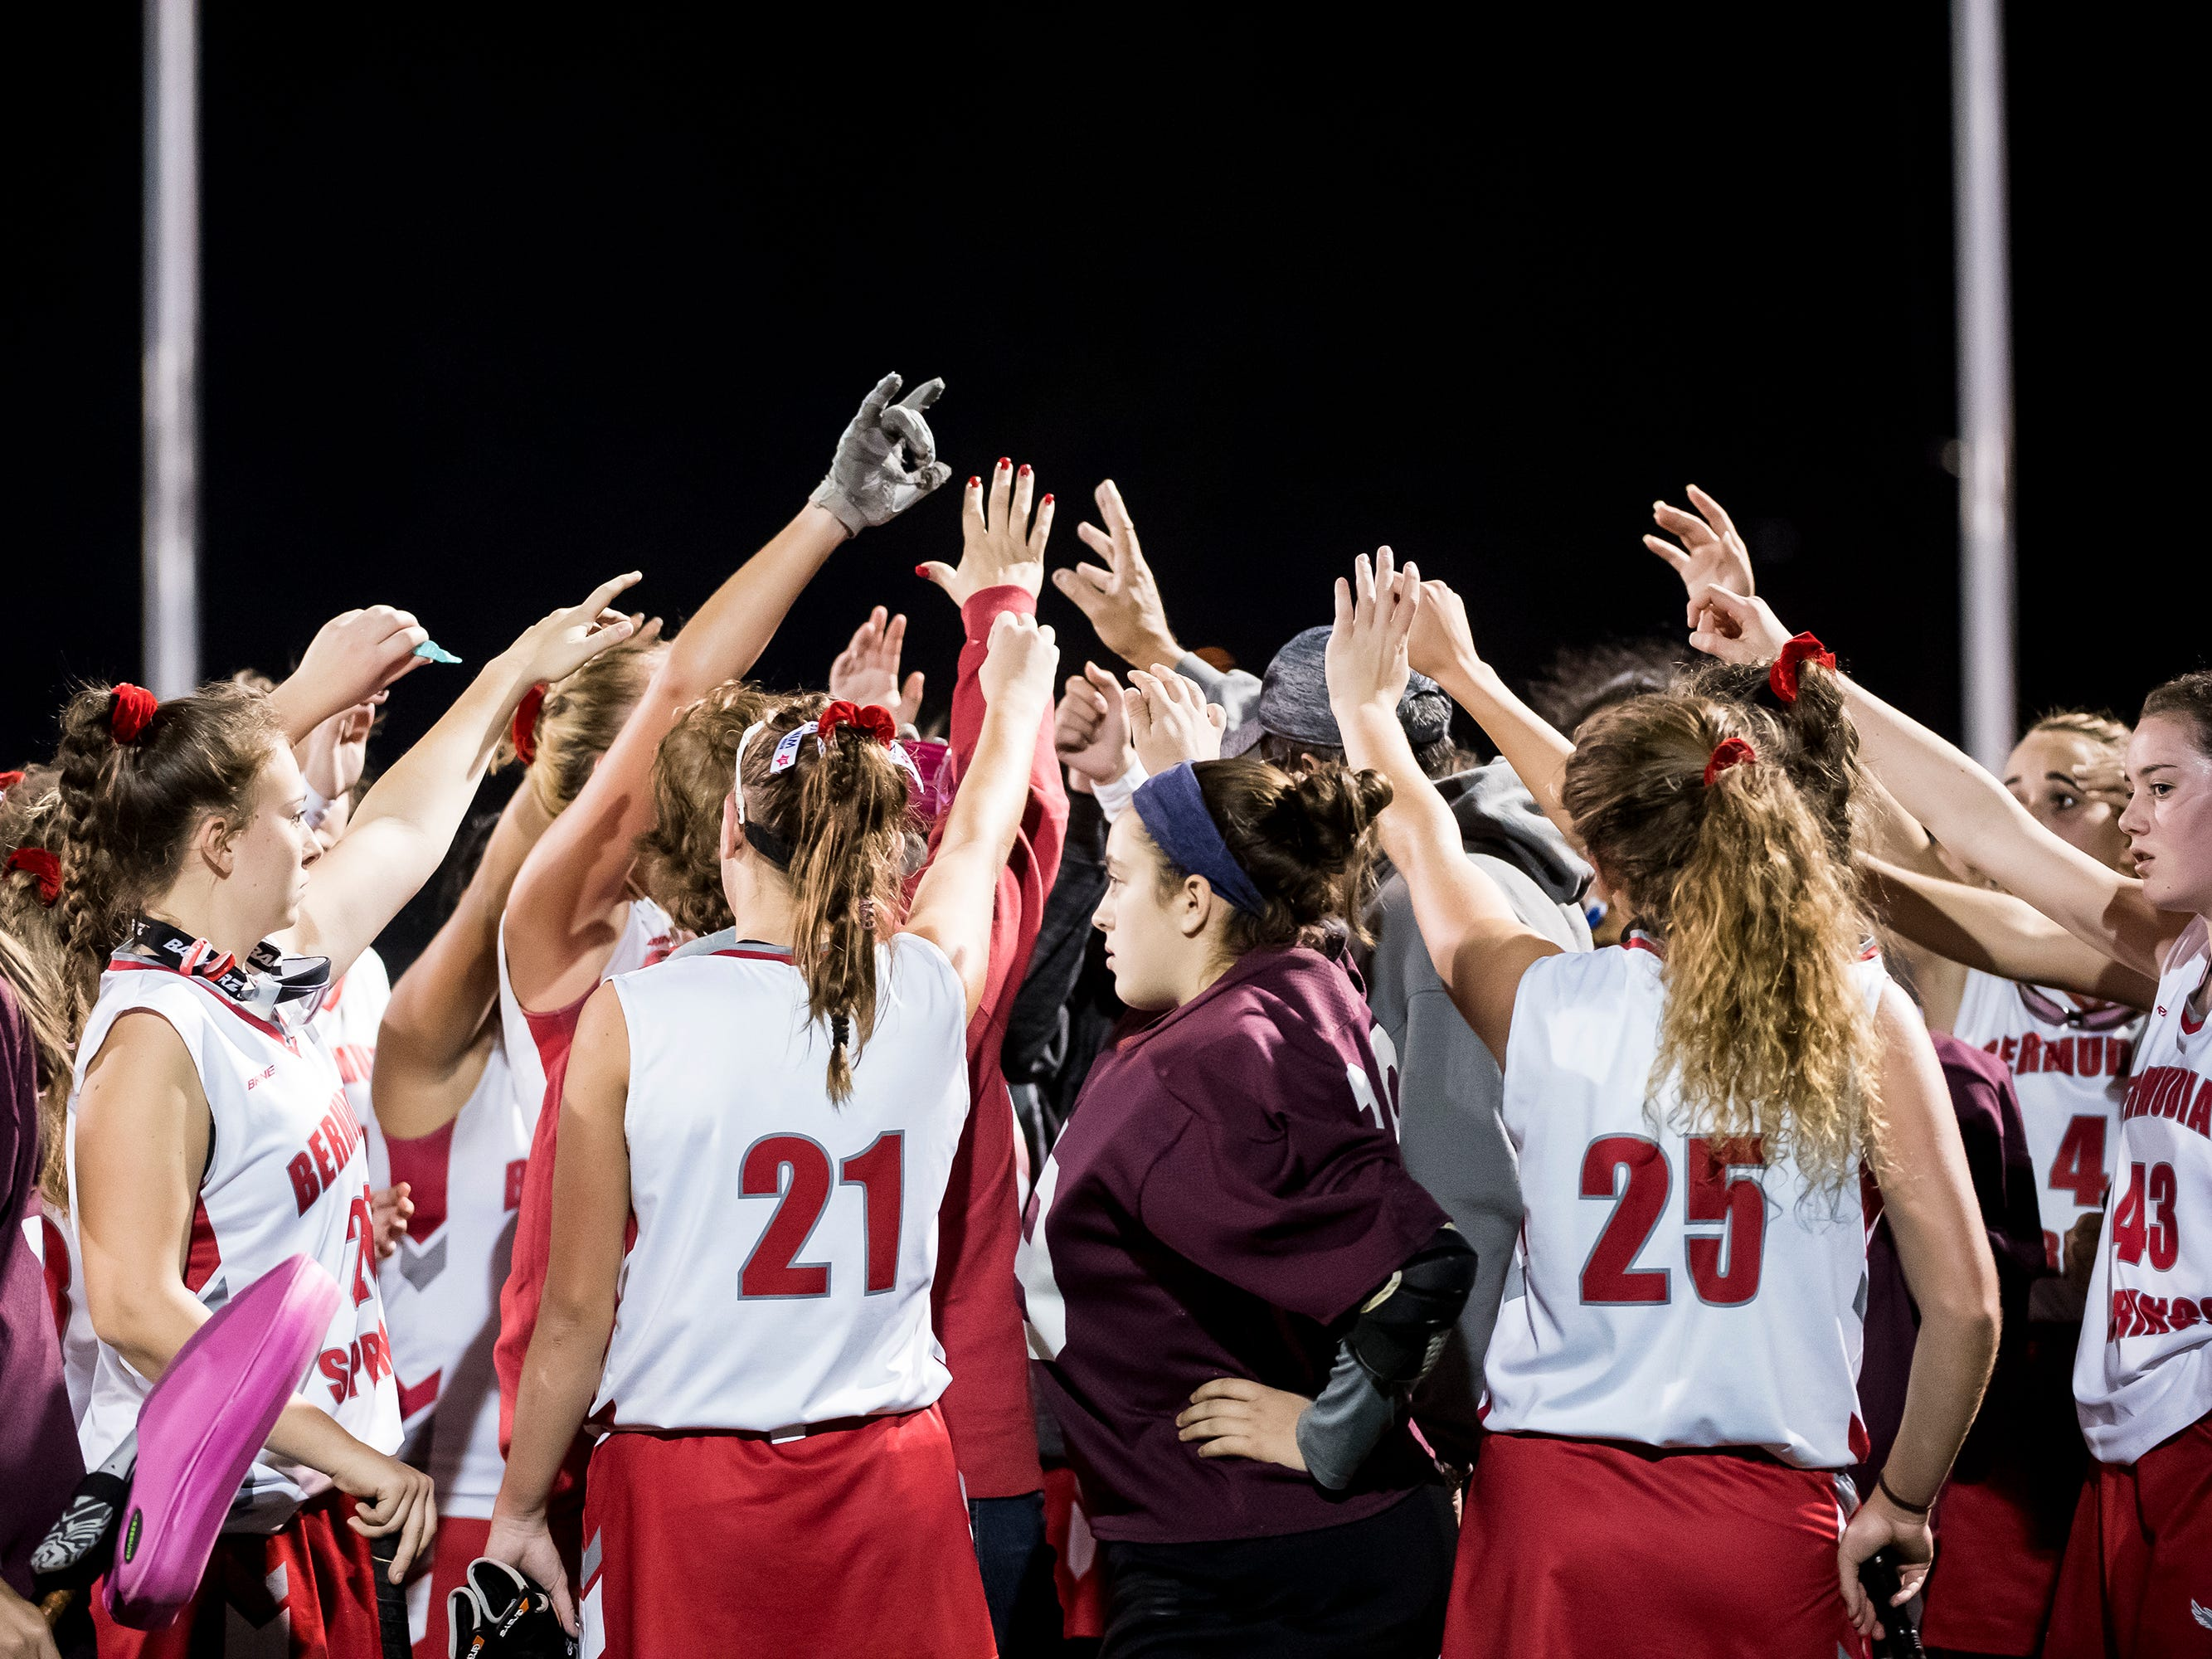 The Bermudian Springs field hockey team comes out of a huddle following their 5-0 loss to Oley Valley in a District III Class A semifinal game at Lower Dauphin Middle School on Wednesday, October 31, 2018.